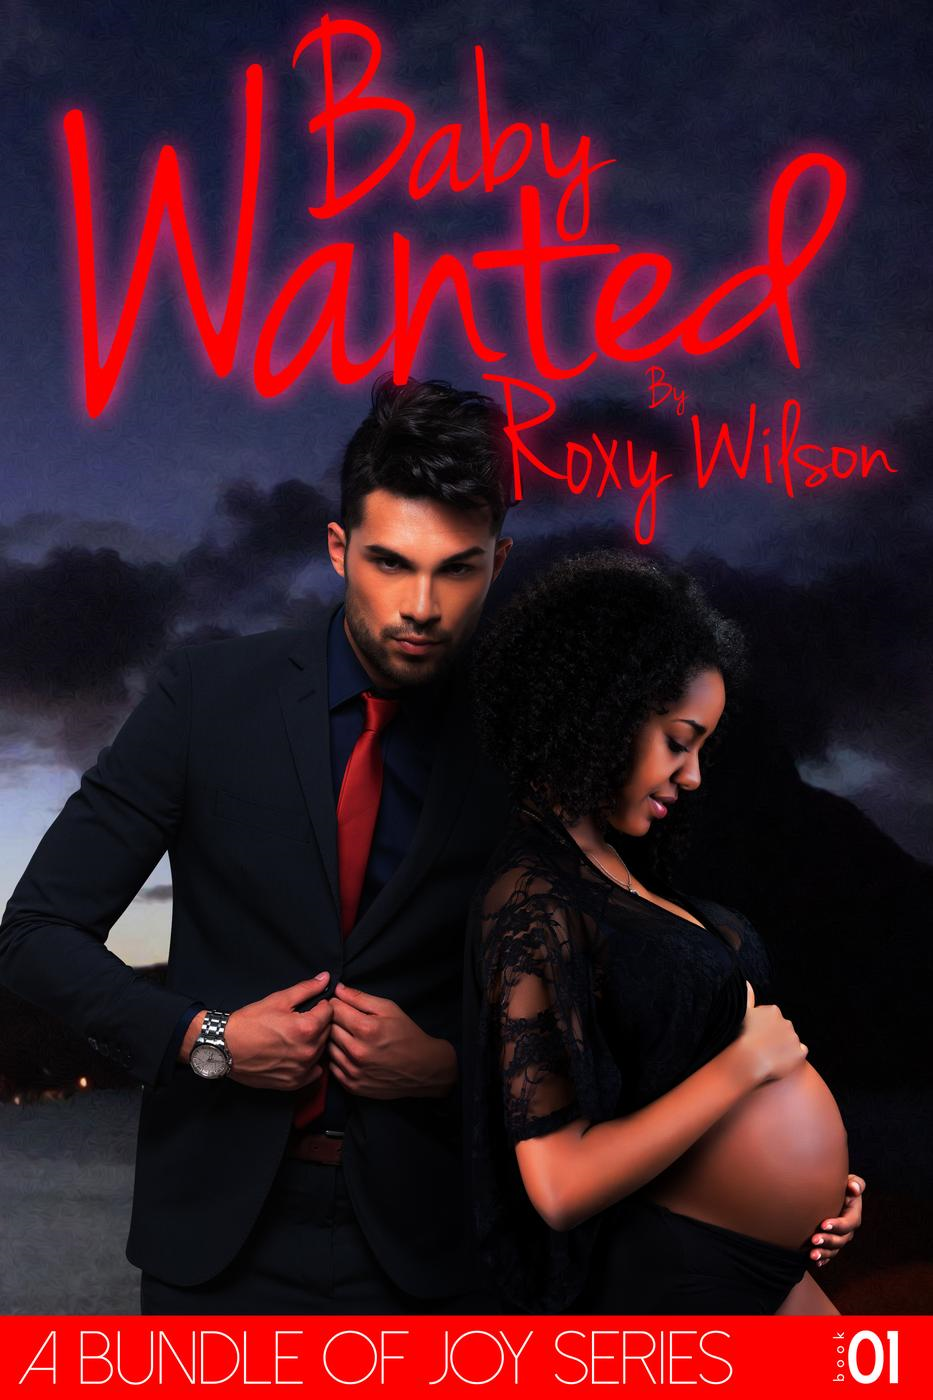 Roxy Wilson - Baby Wanted